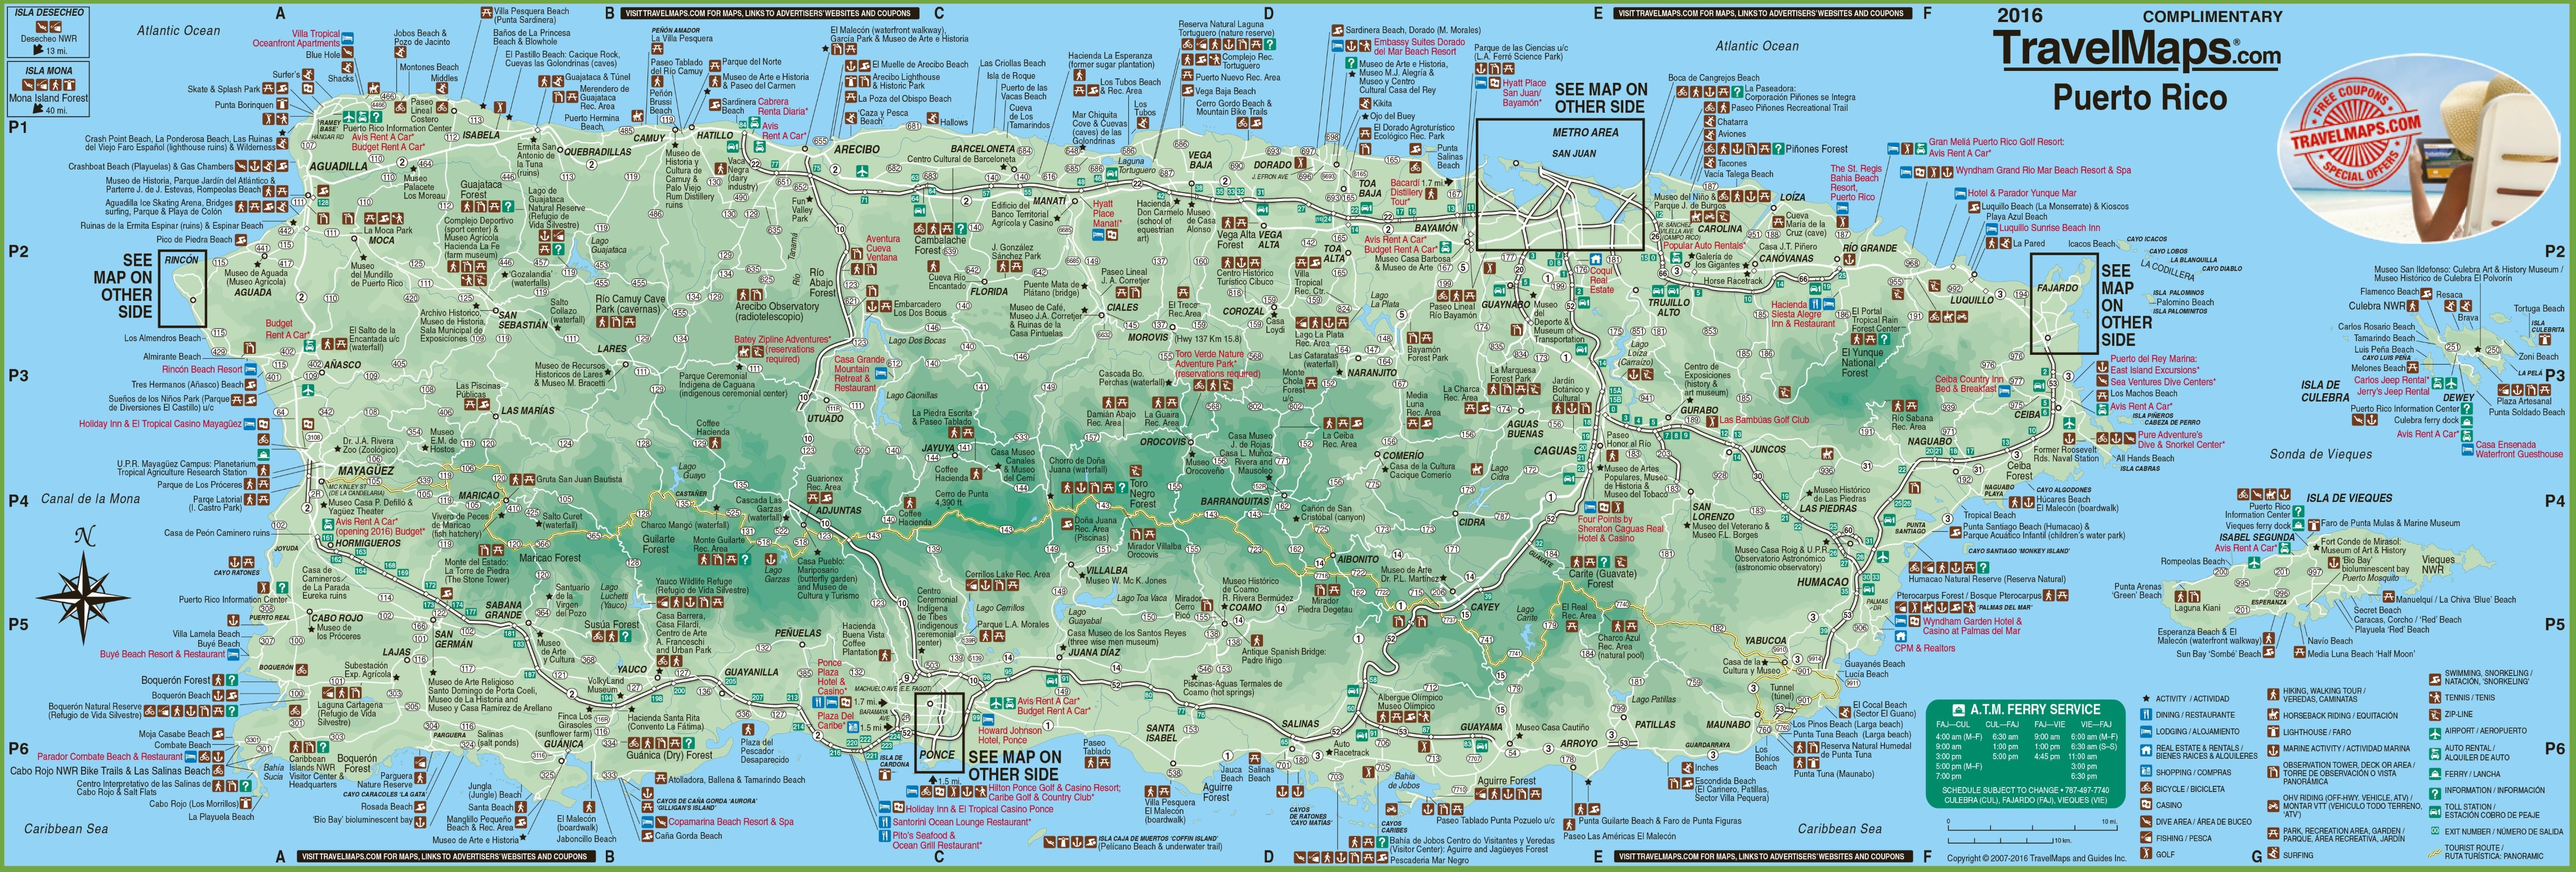 Map Of Puerto Rico With Cities Large detailed tourist map of Puerto Rico with cities and towns Map Of Puerto Rico With Cities